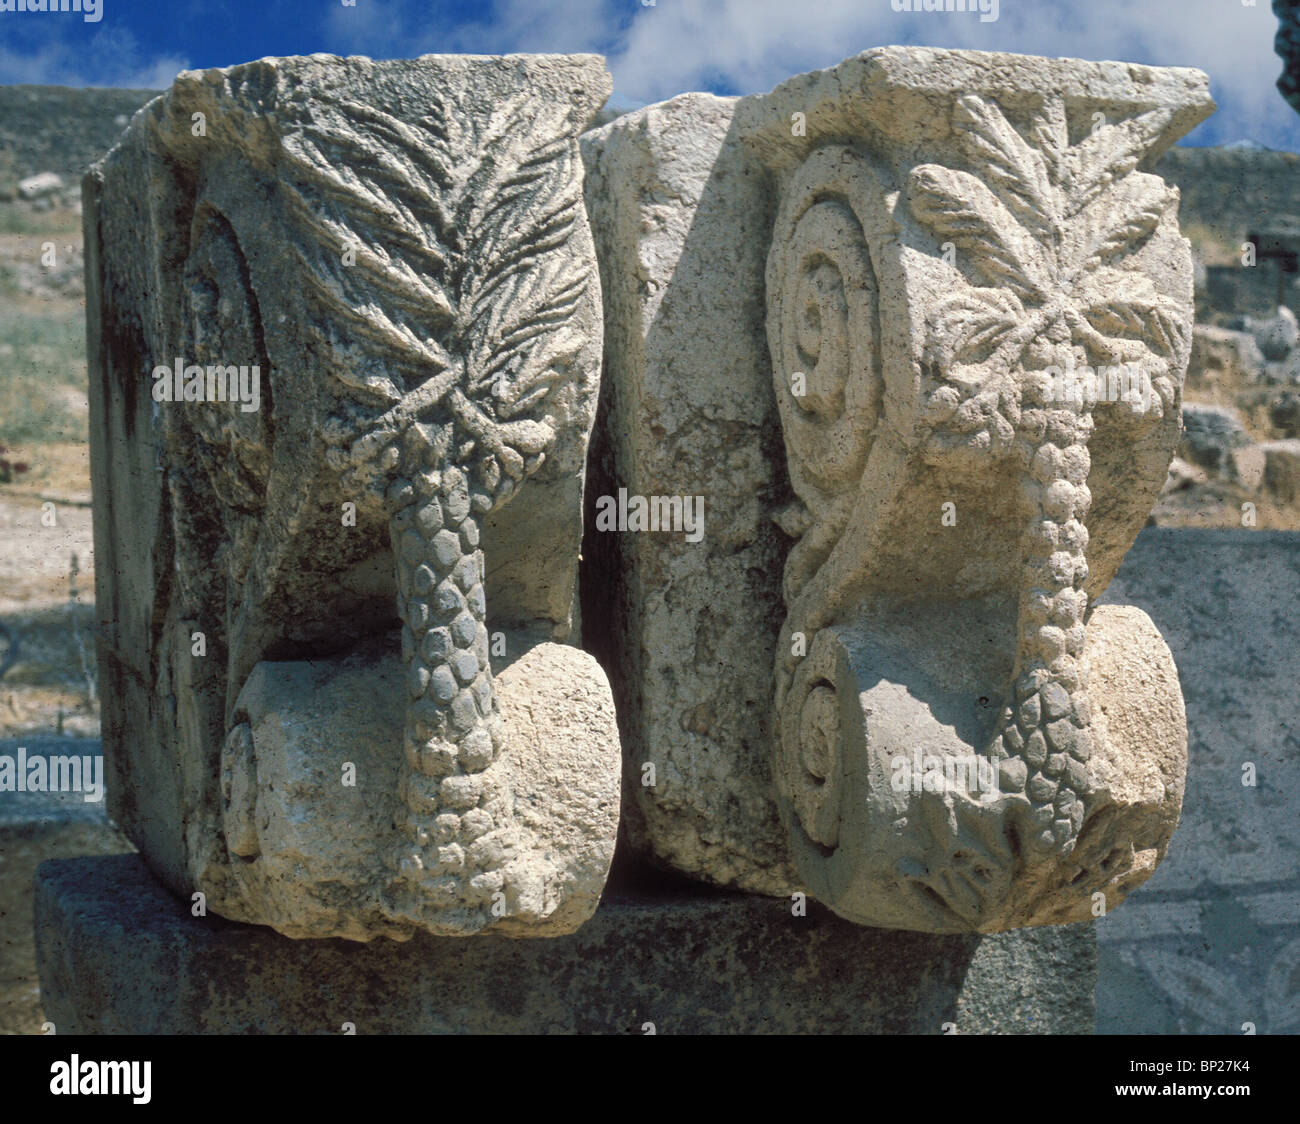 CAPERNAUM - ARCHITECTURAL DETAILS FROM THE 4TH. C. SYNAGOGUE. STONE CARVINGS DEPICTING FRUIT AND TREES OF THE LAND - Stock Image